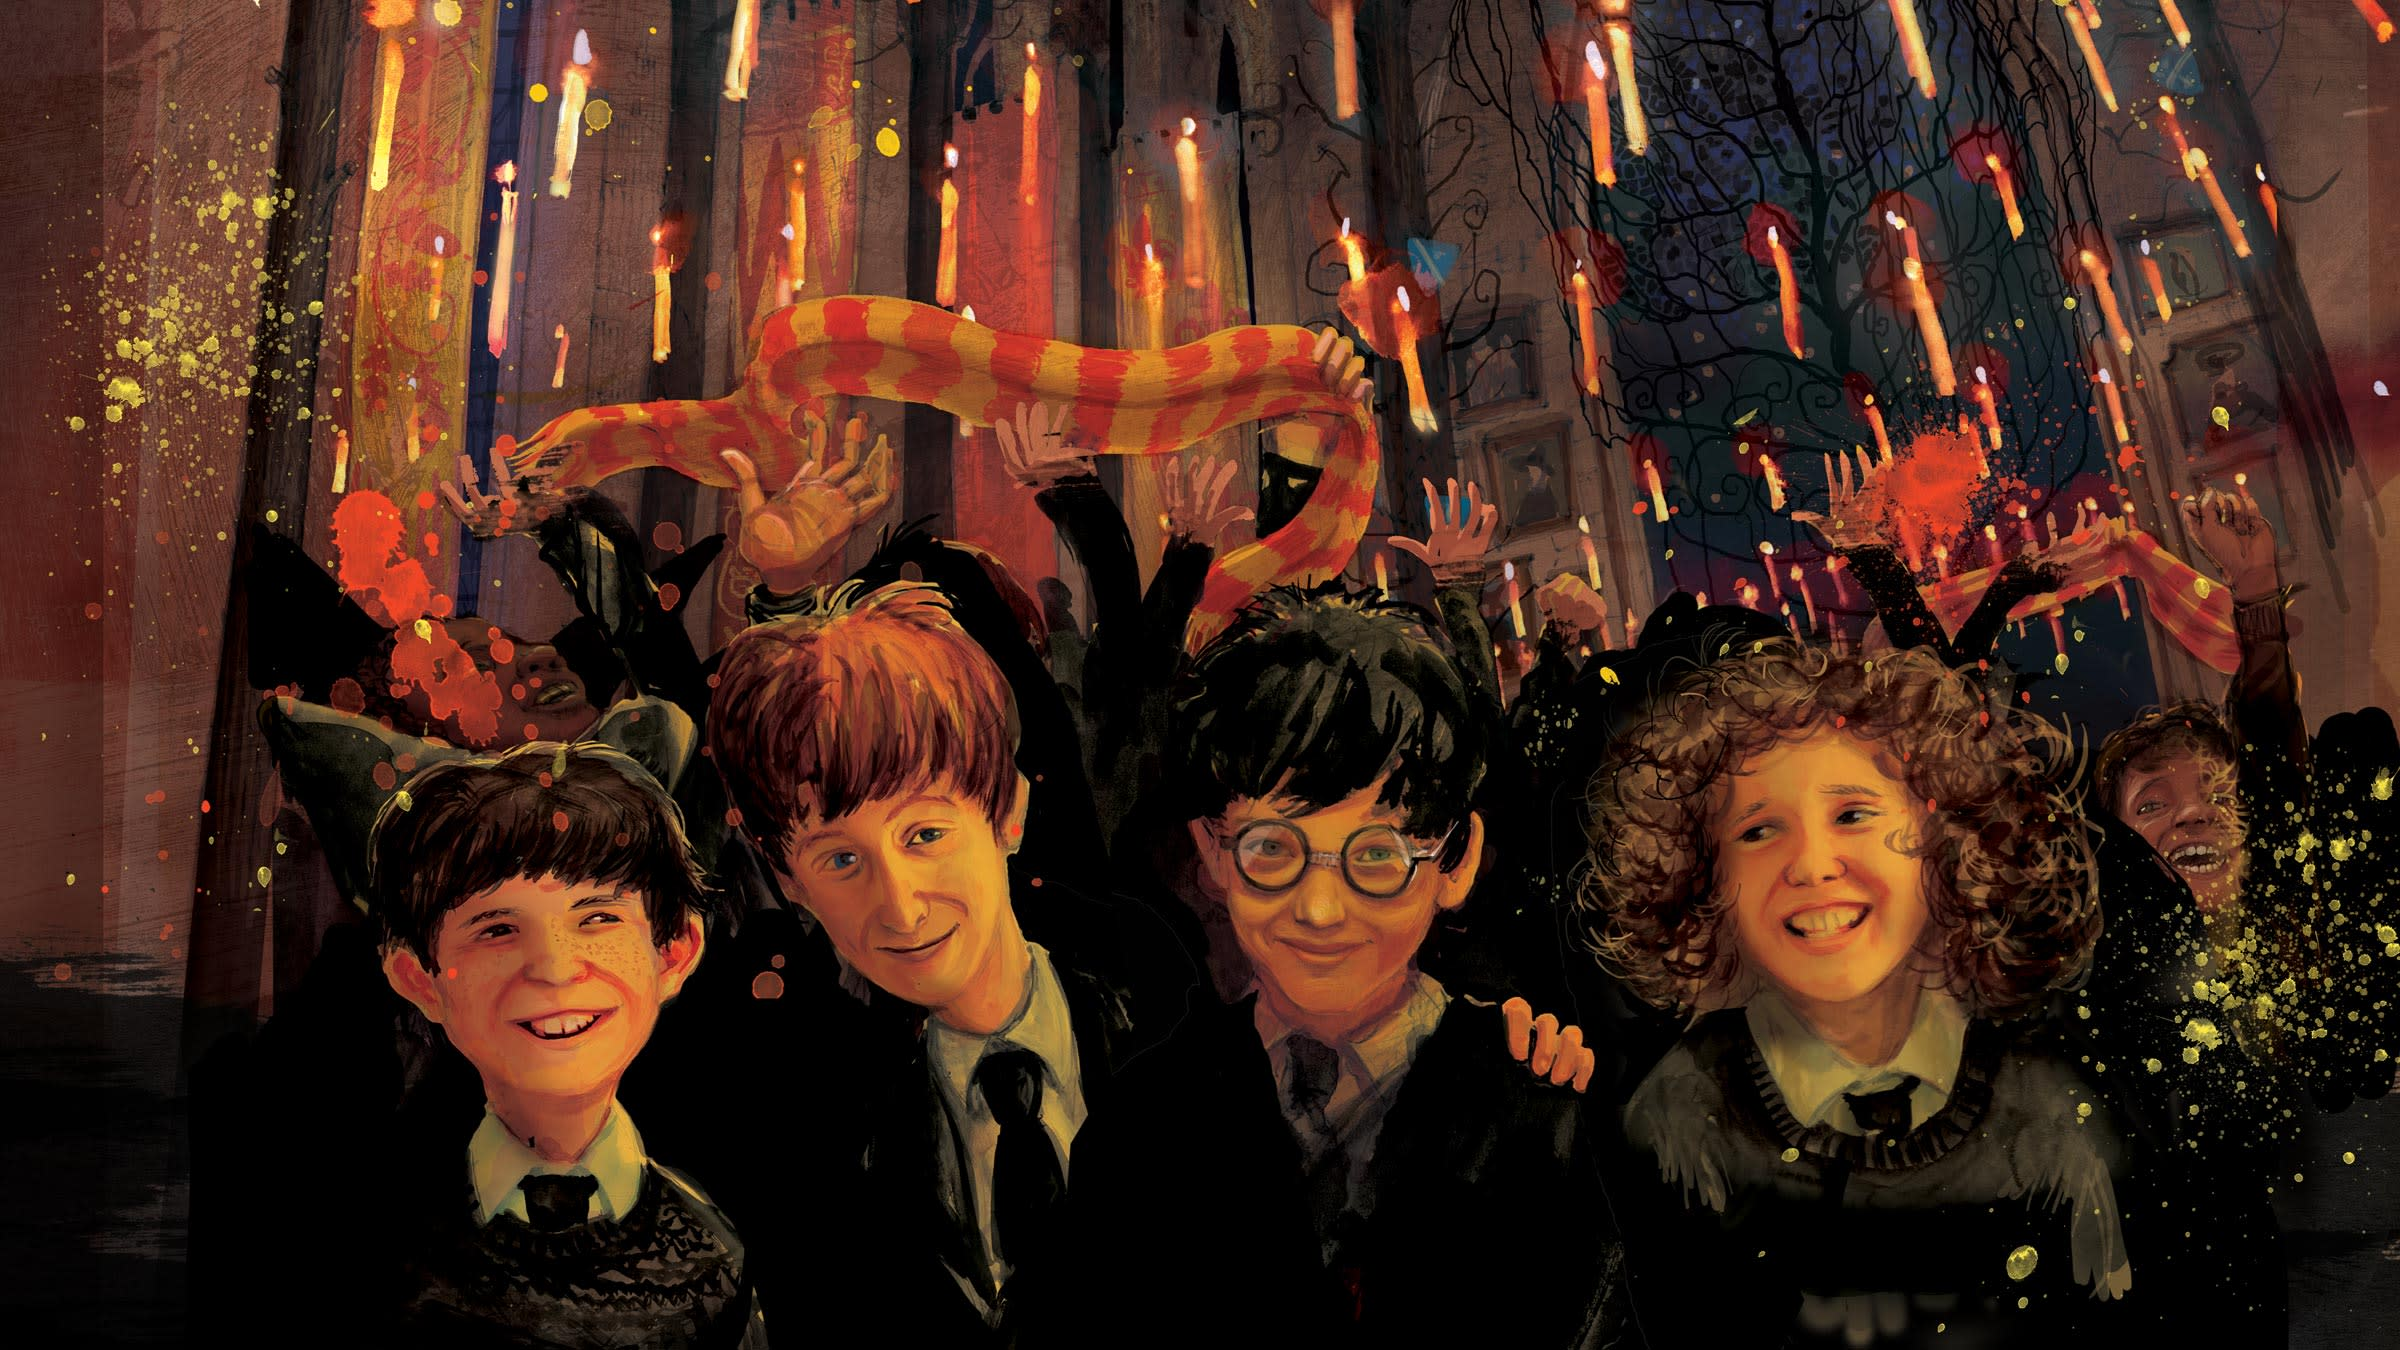 illustration-harry-ron-hermione-great-hall-feast-candles-image